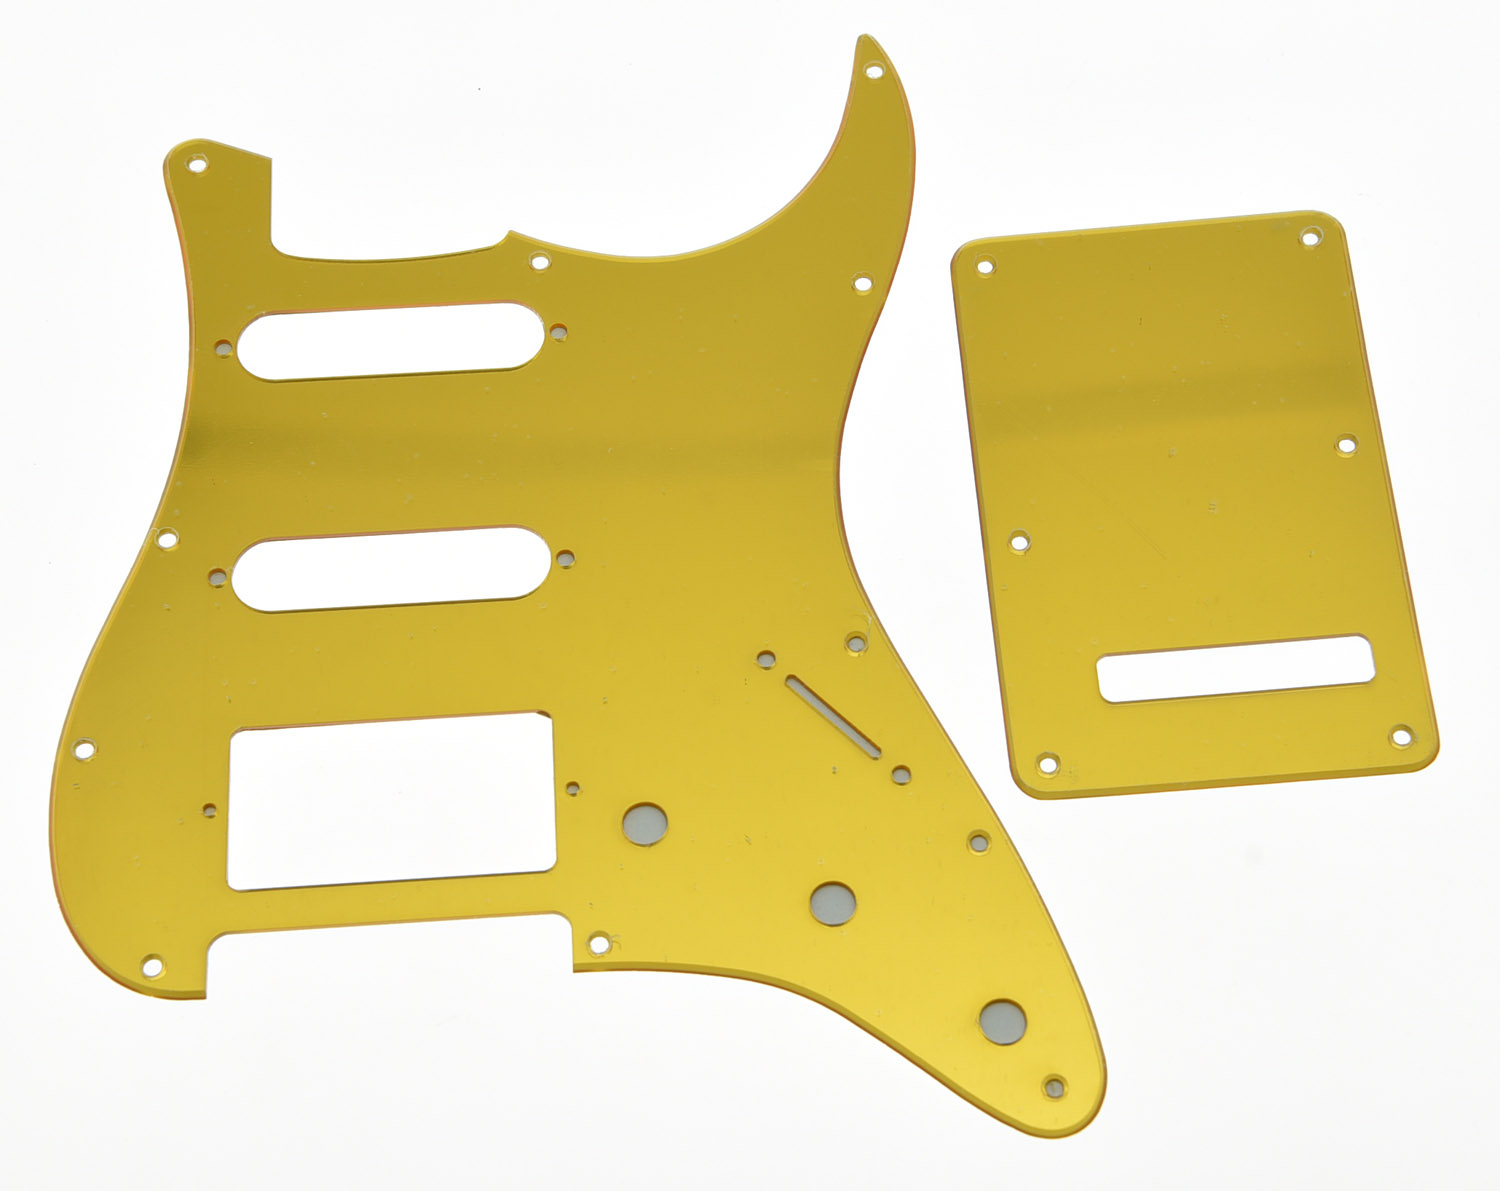 Gold Mirror HSS ST Guitar Pickguard Back Plate and Screws fits USA ST musiclily 3ply pvc outline pickguard for fenderstrat st guitar custom